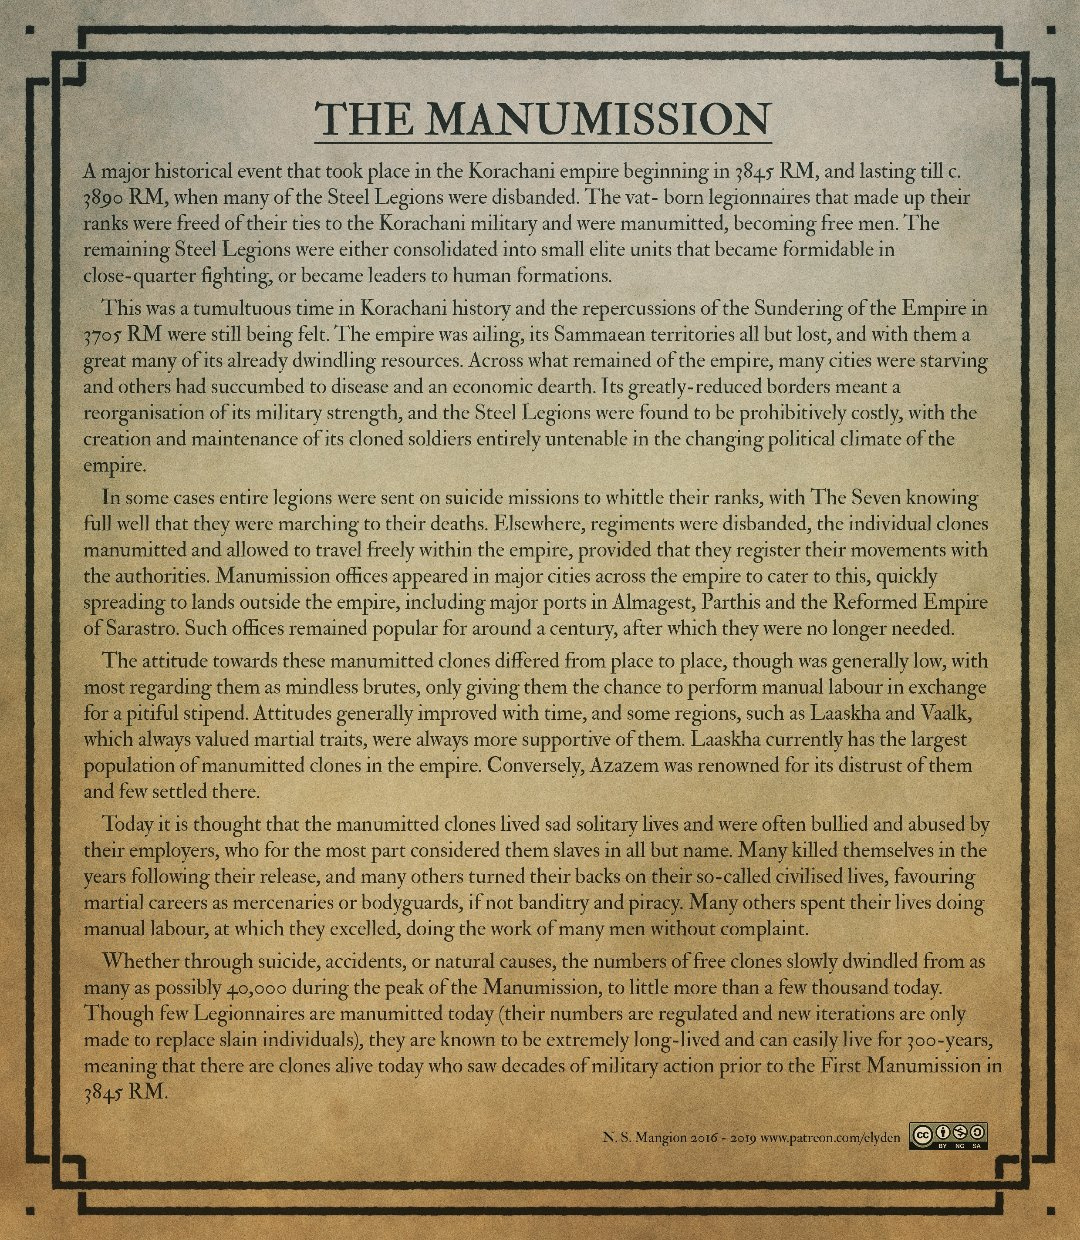 the Manumission of the Clones